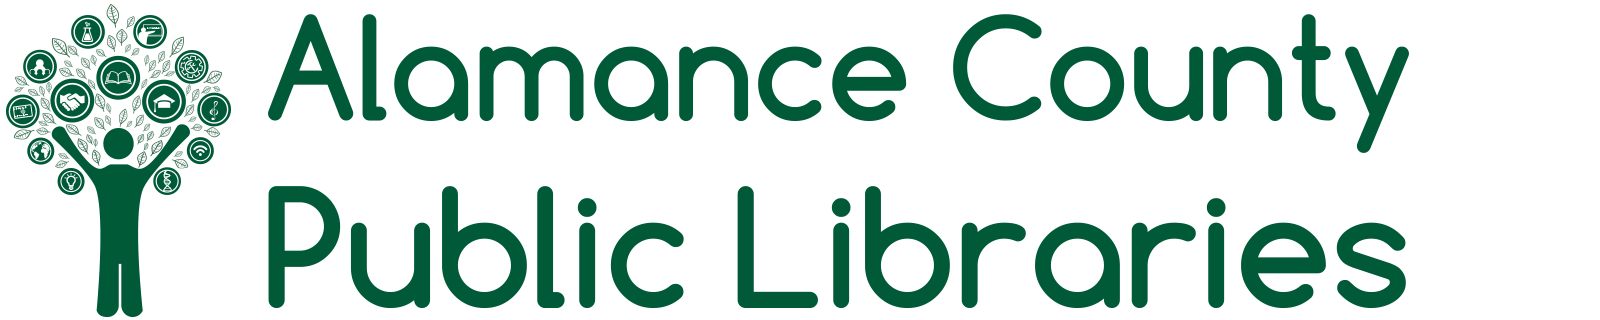 Libraries about library locations. Schedule clipart holiday calendar